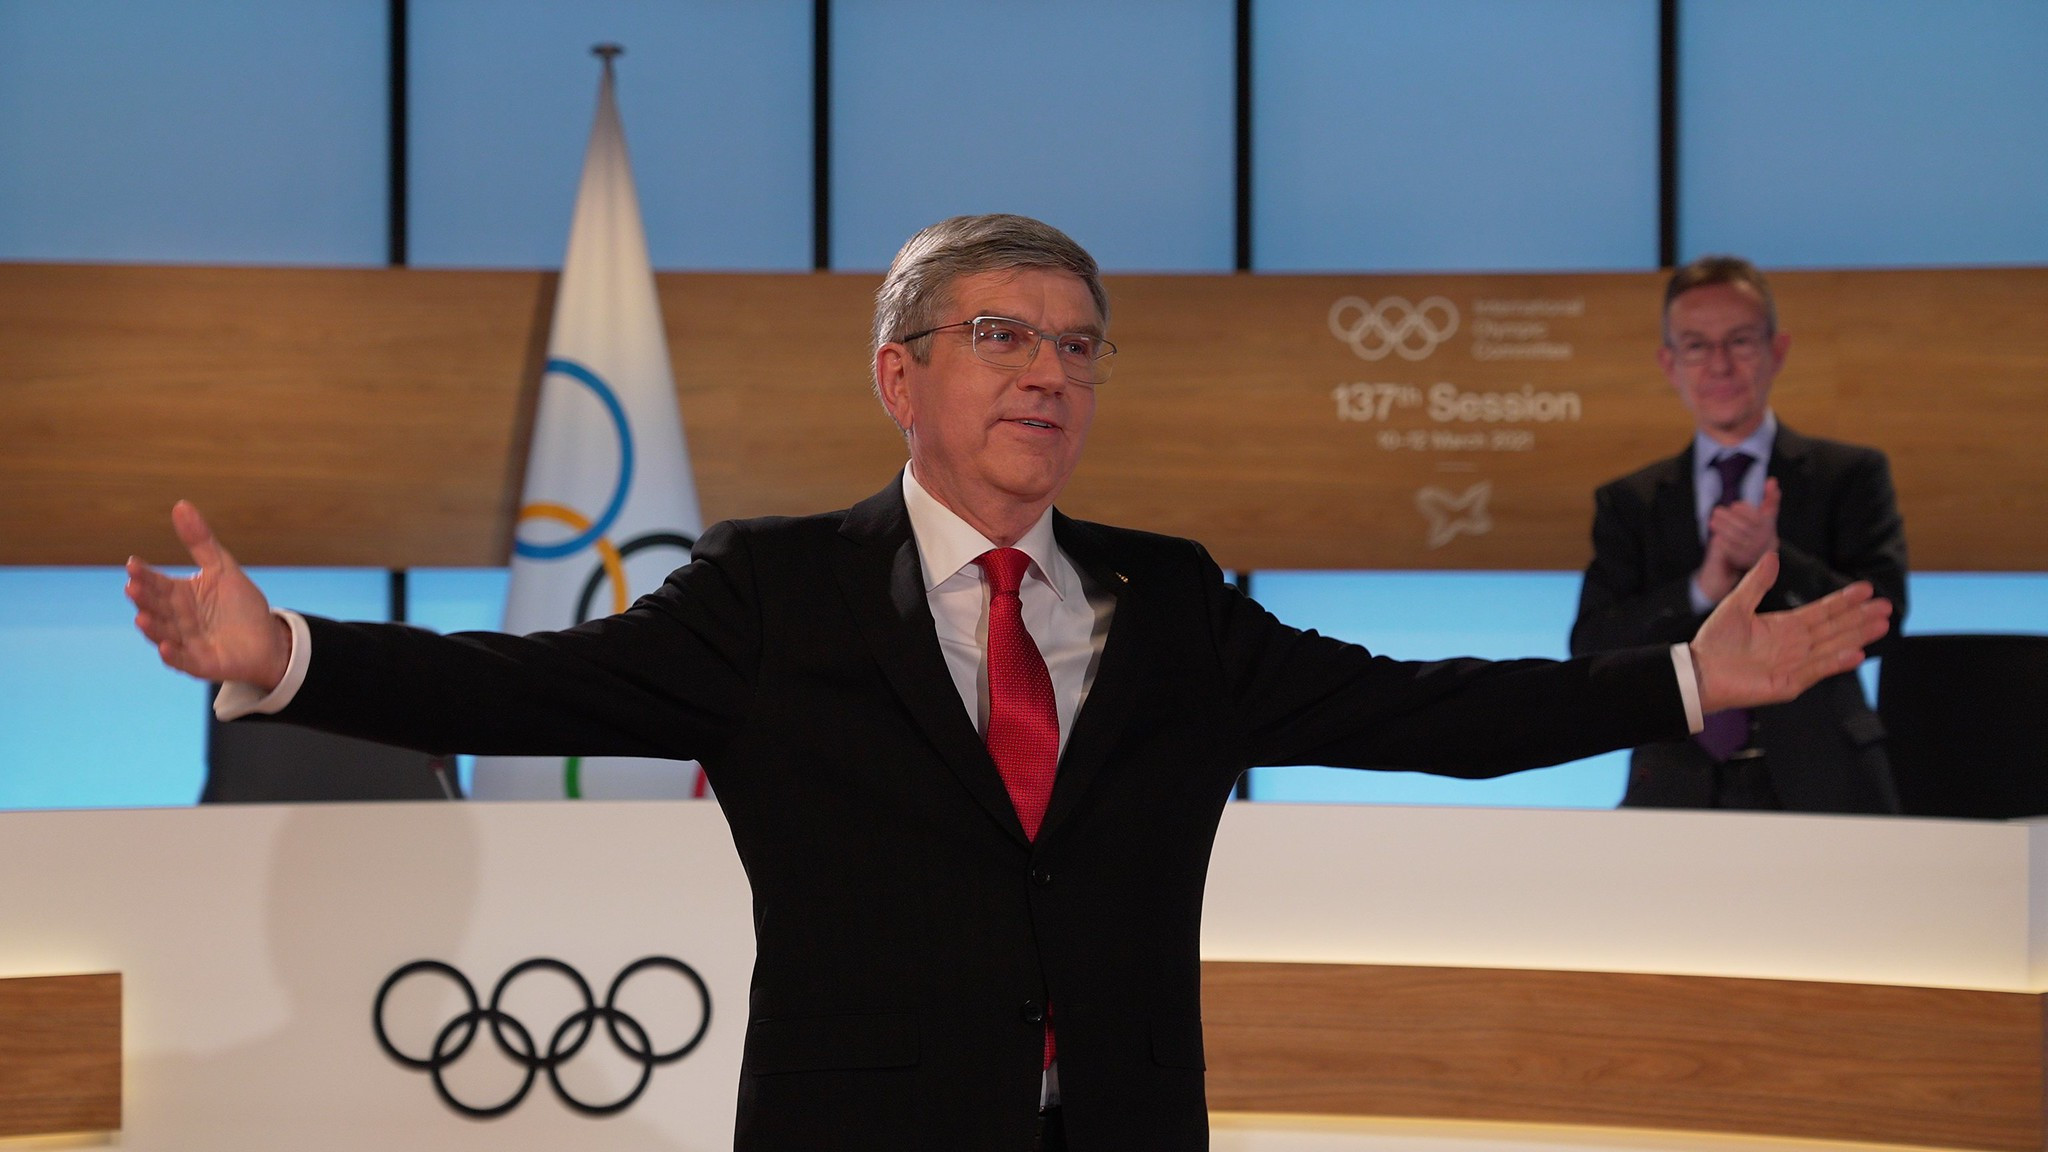 IOC President Thomas Bach was re-elected unopposed at the organisation's 137th Session, held virtually, last week ©IOC